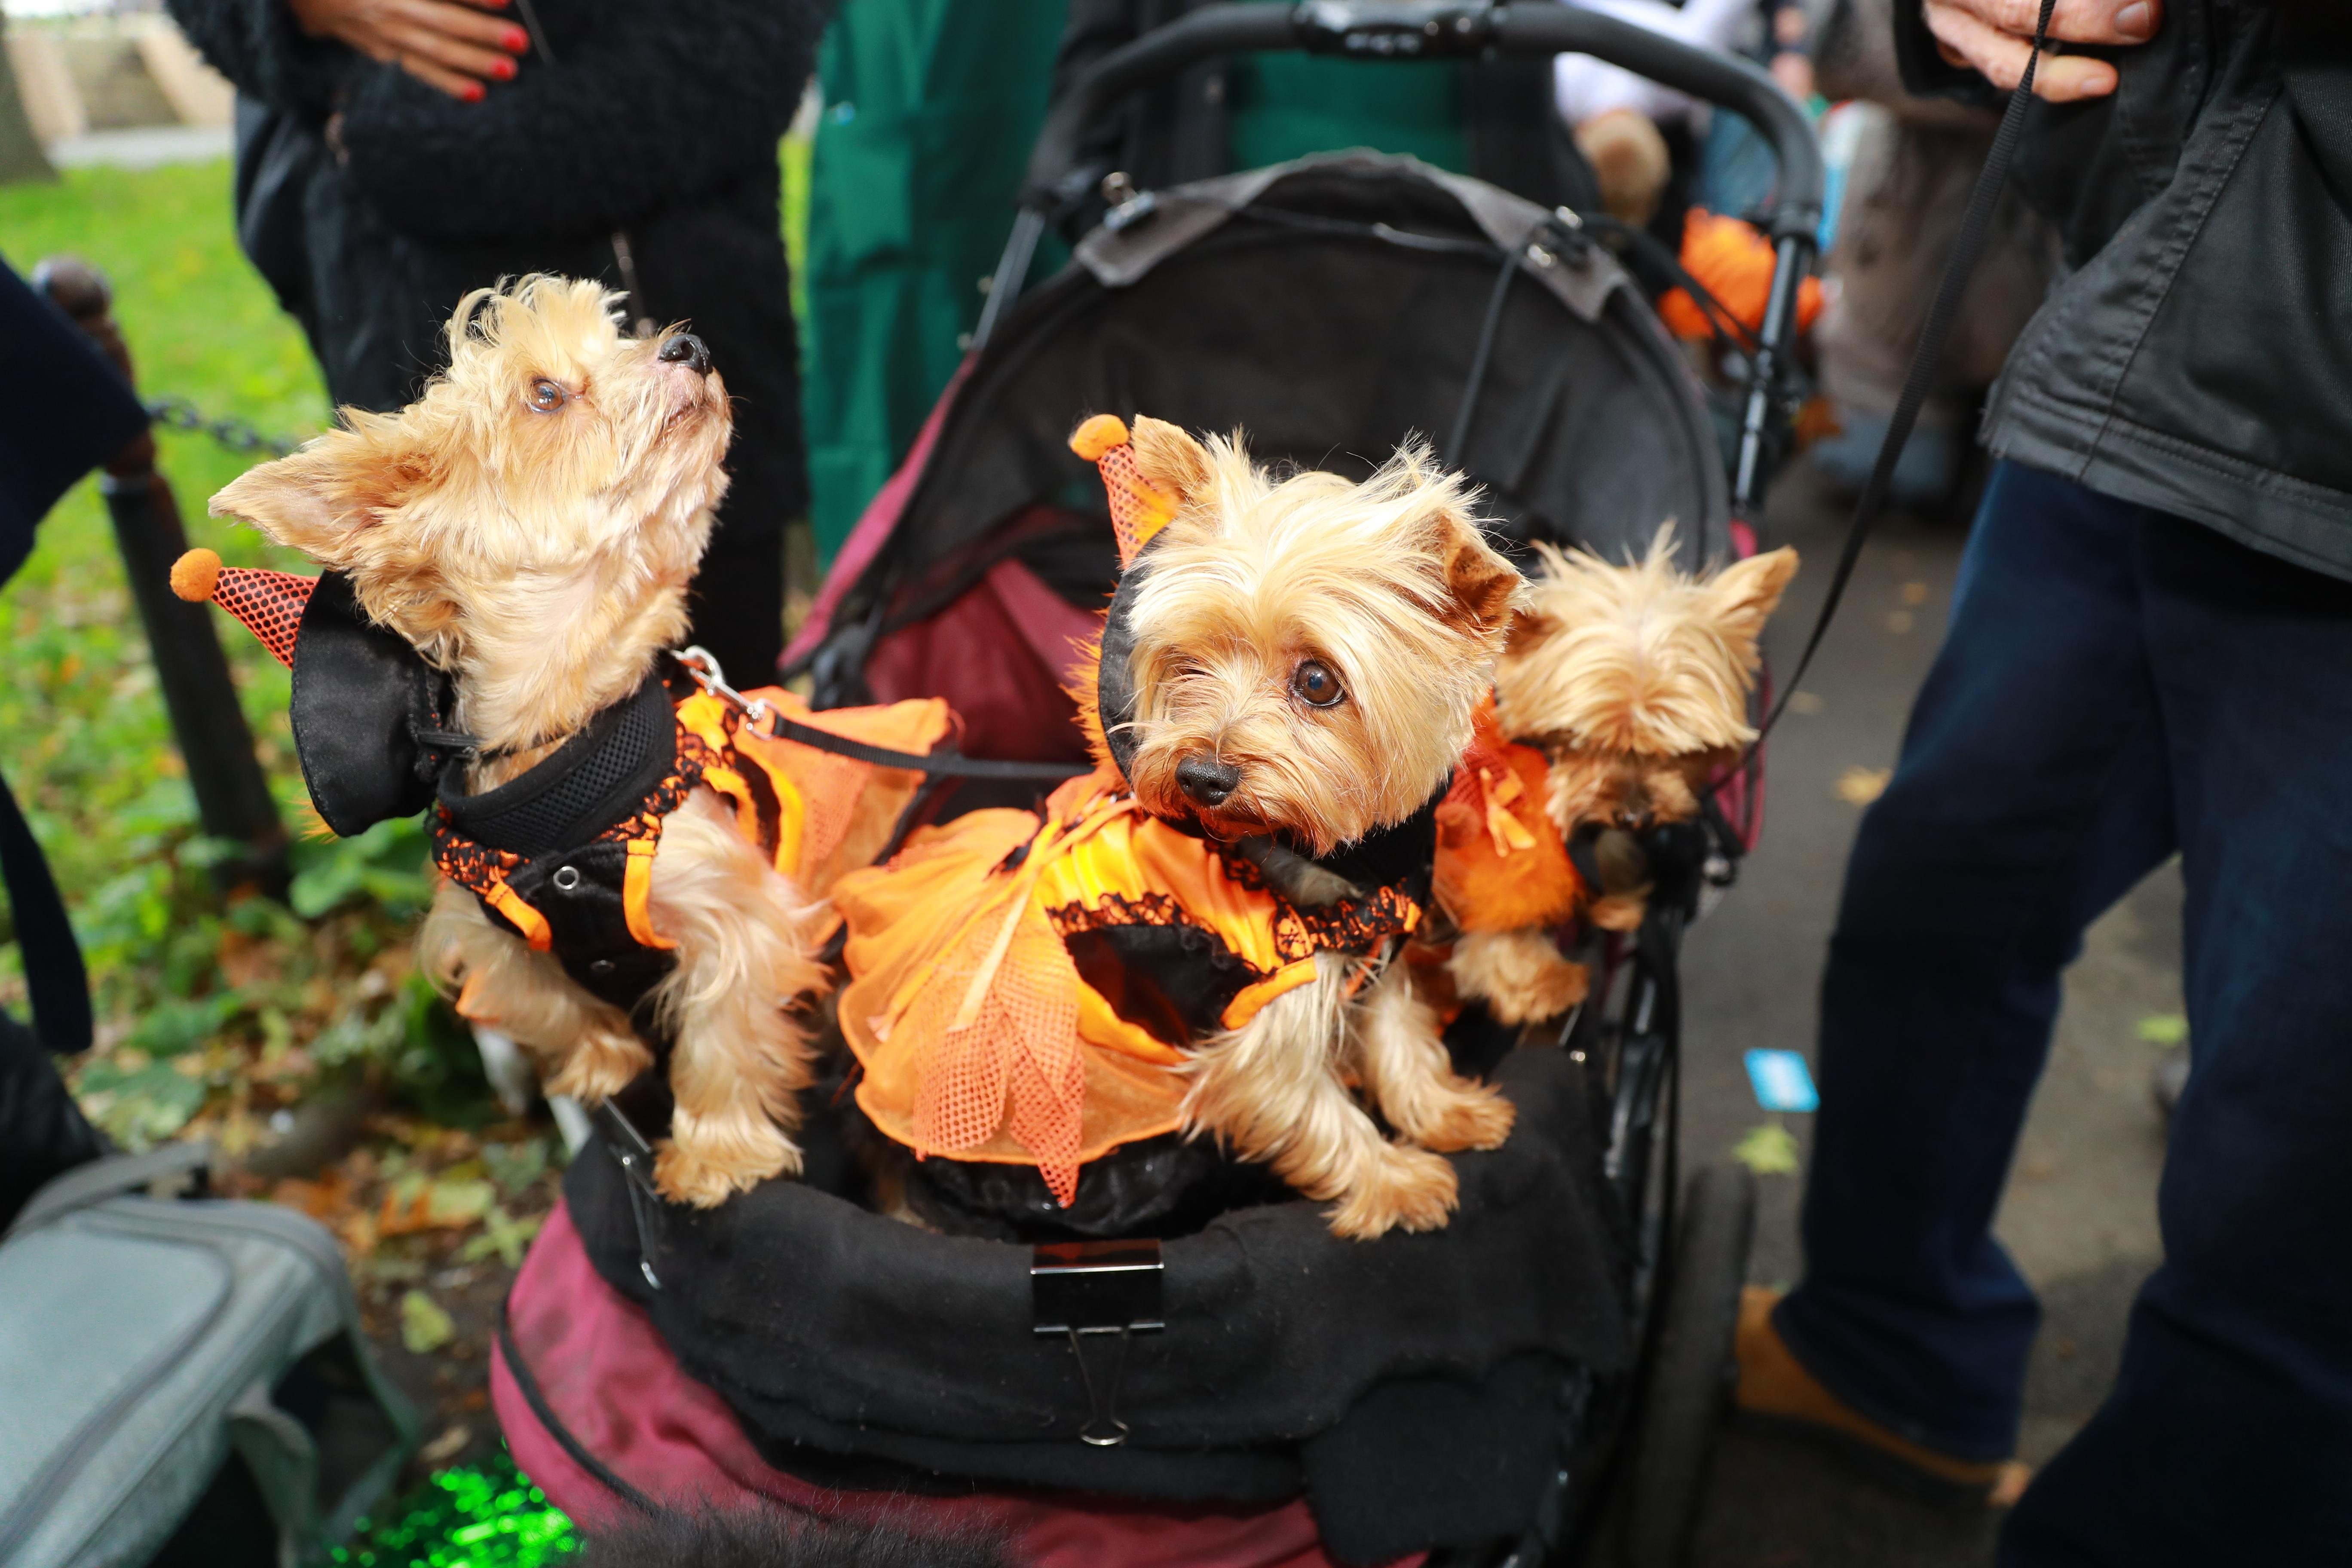 <p>A carriage of Yorkies in dresses attend the 28th Annual Tompkins Square Halloween Dog Parade at East River Park Amphitheater in New York on Oct. 28, 2018. (Photo: Gordon Donovan/Yahoo News) </p>